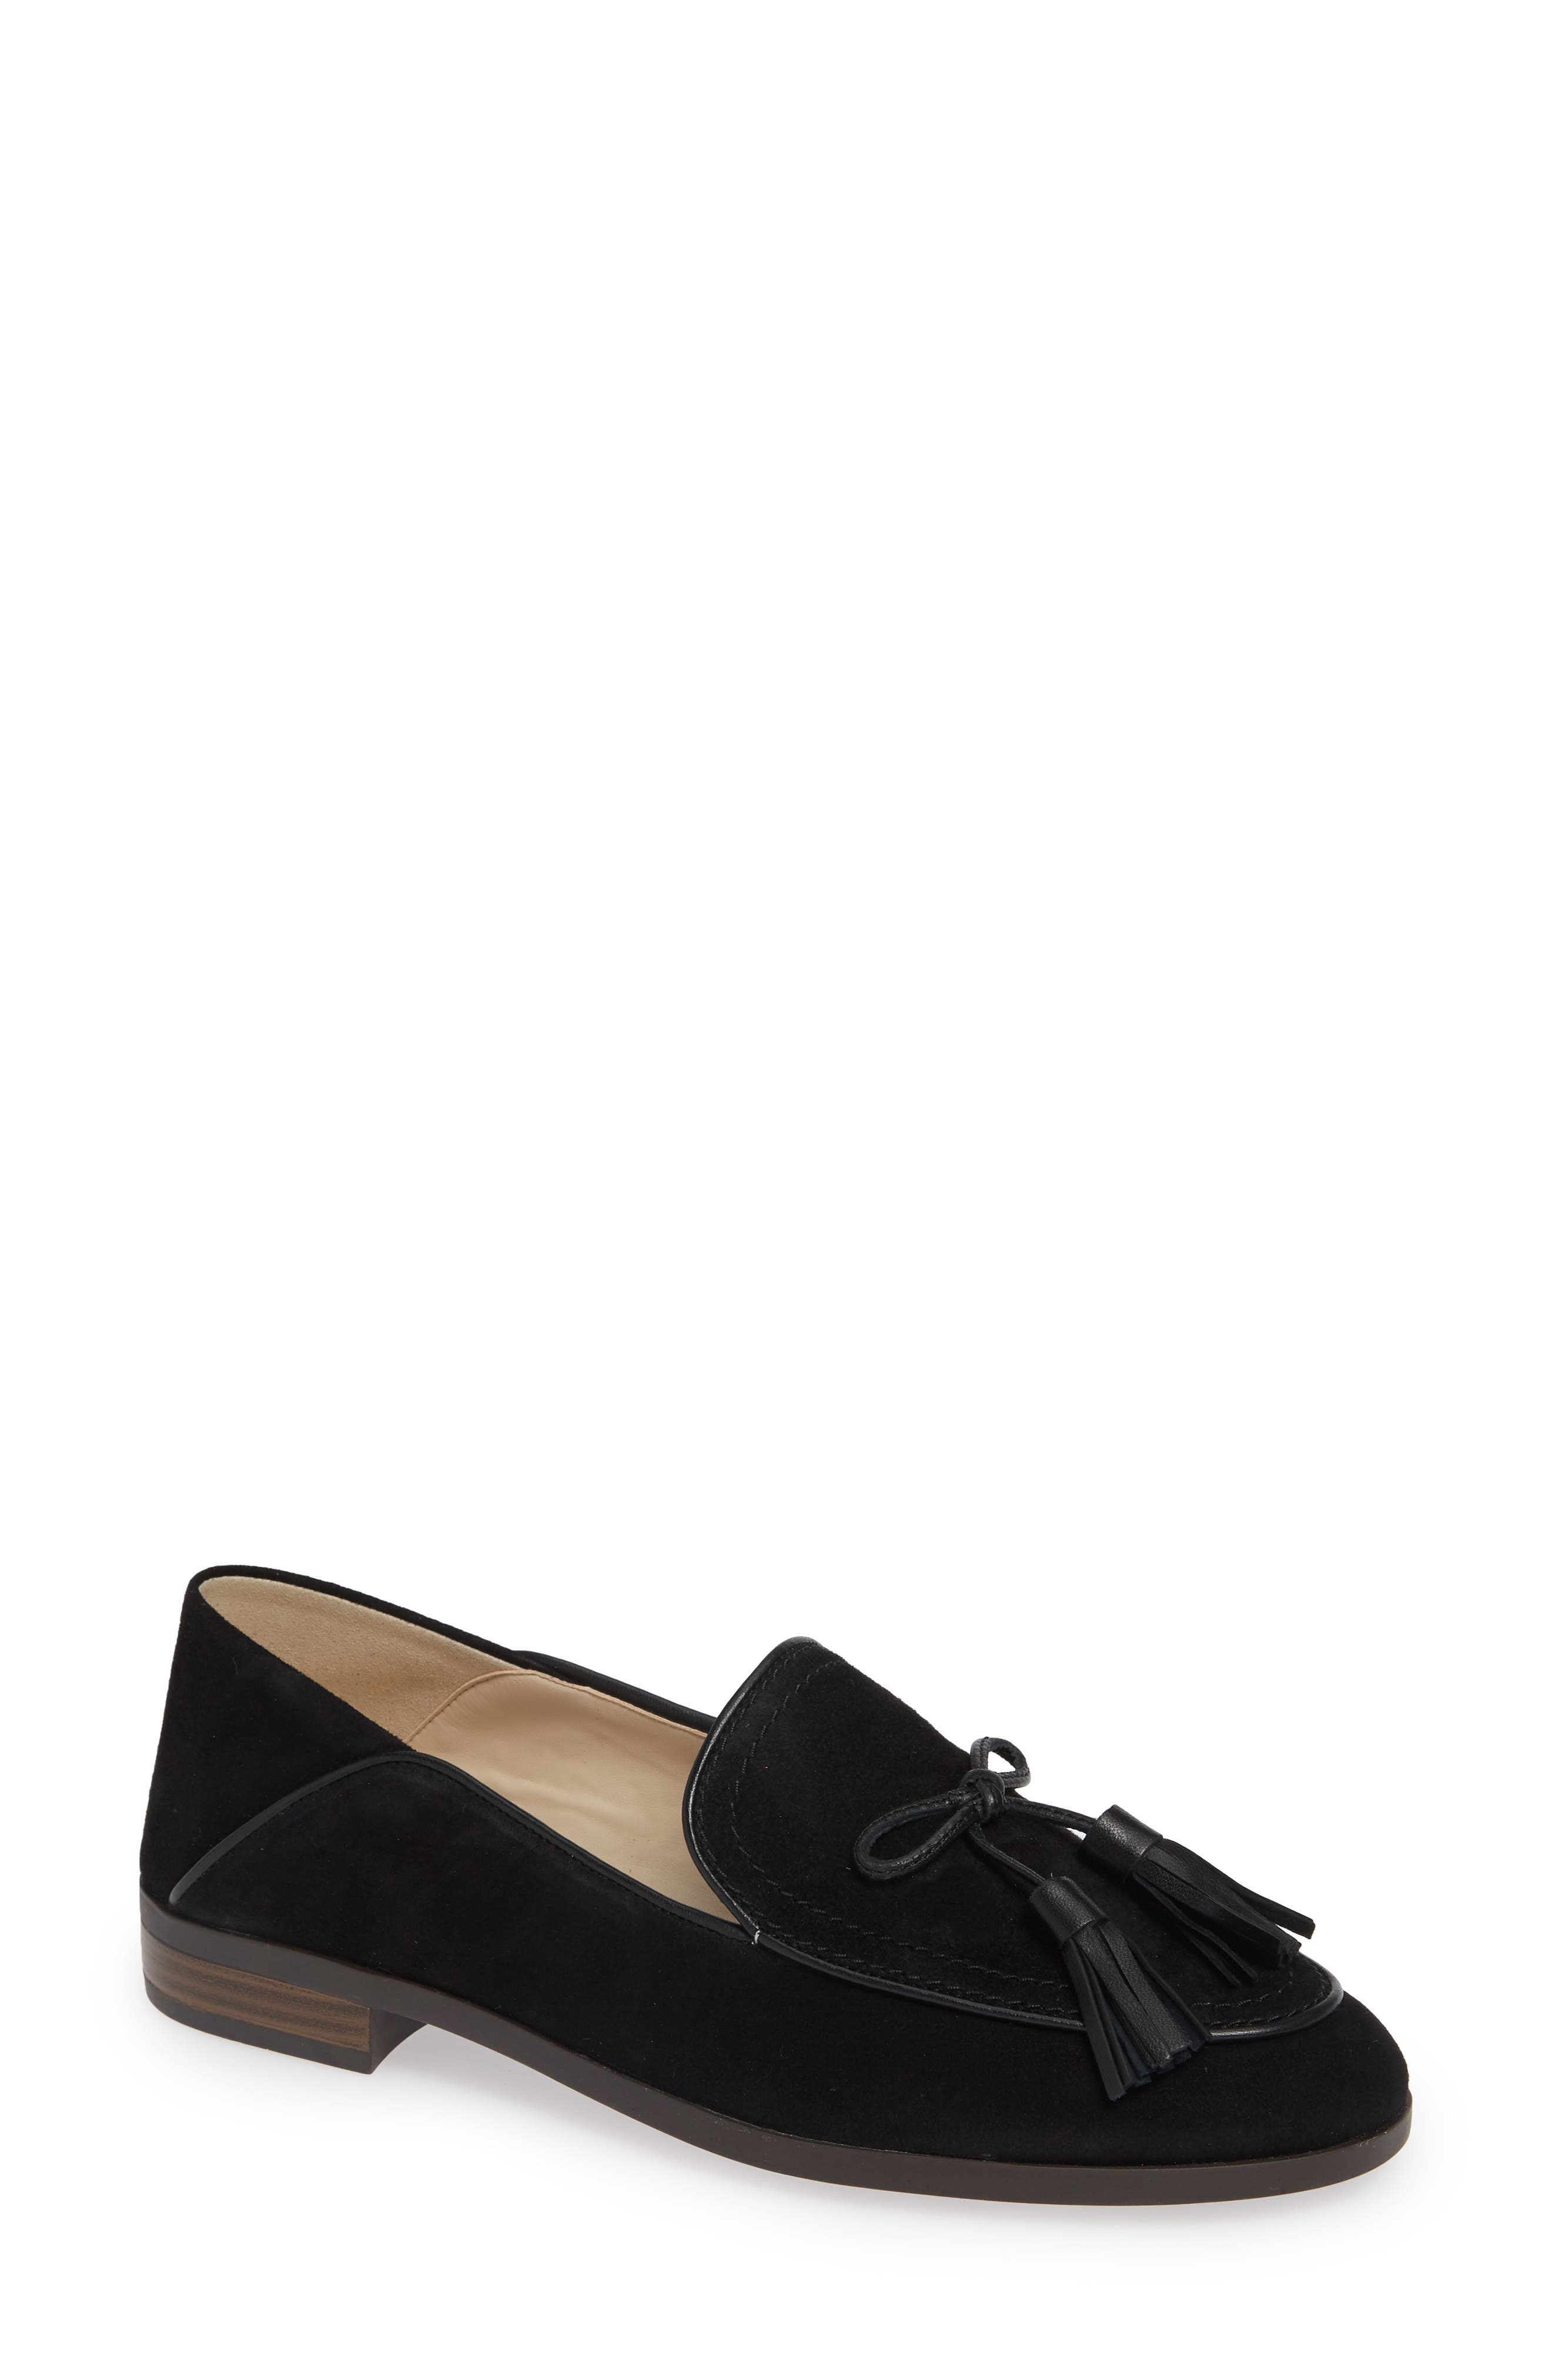 COLE HAAN Gabrielle Loafer, Main, color, BLACK SUEDE